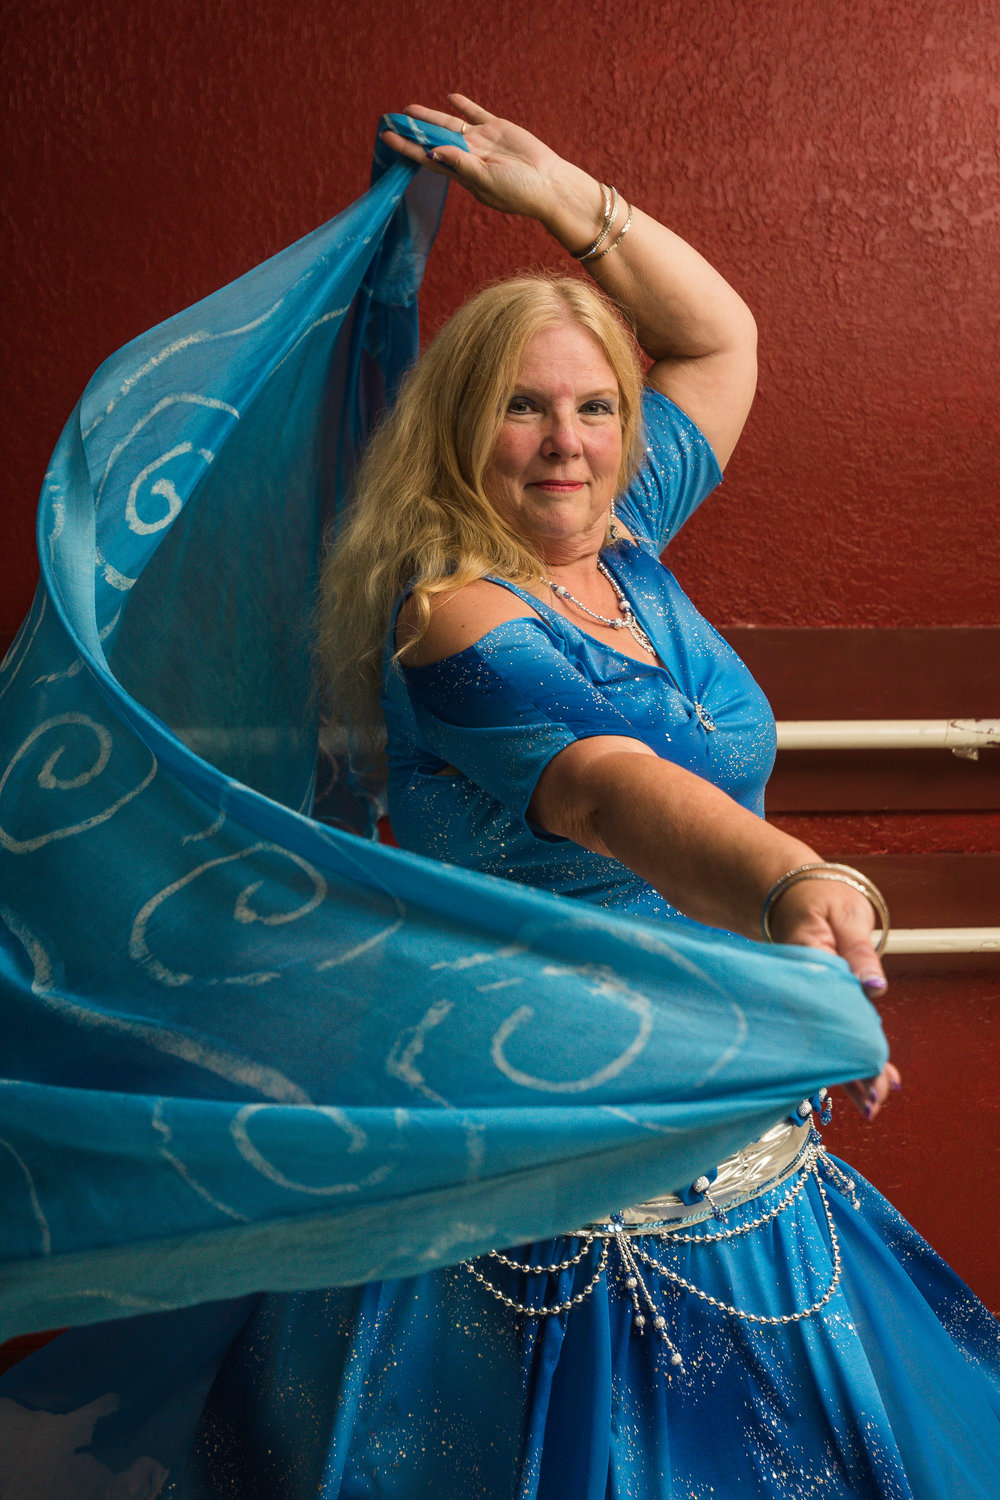 Current studio instructors include Mezdulene (pictured above), Sakari and Summer Frye.